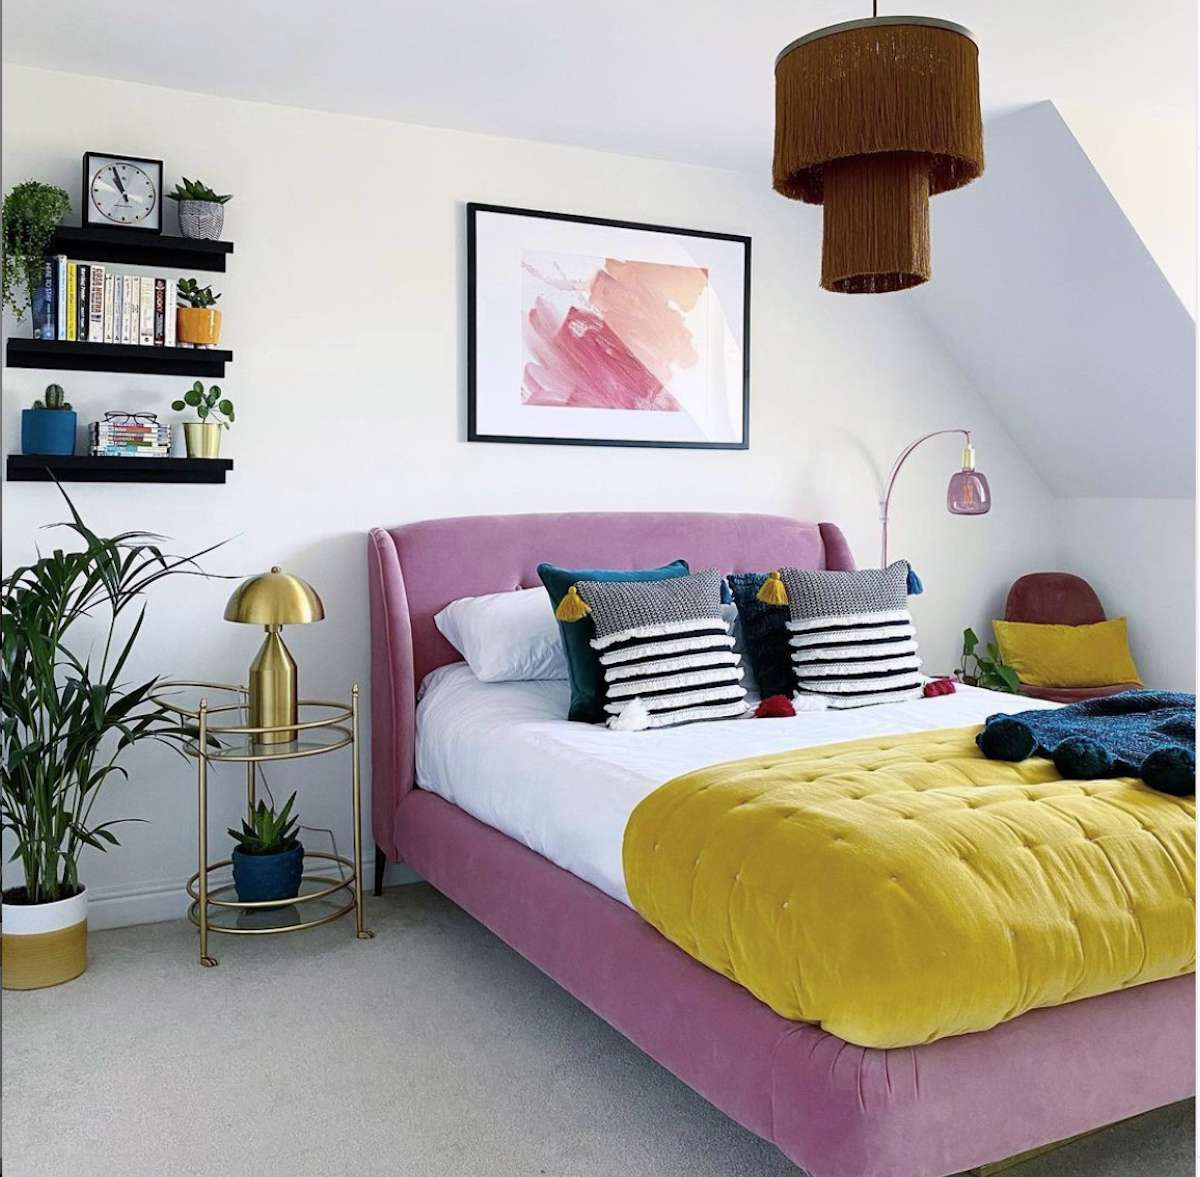 bedroom with white walls, light purple bed frame, yellow comforter, accents of gold and purple glass